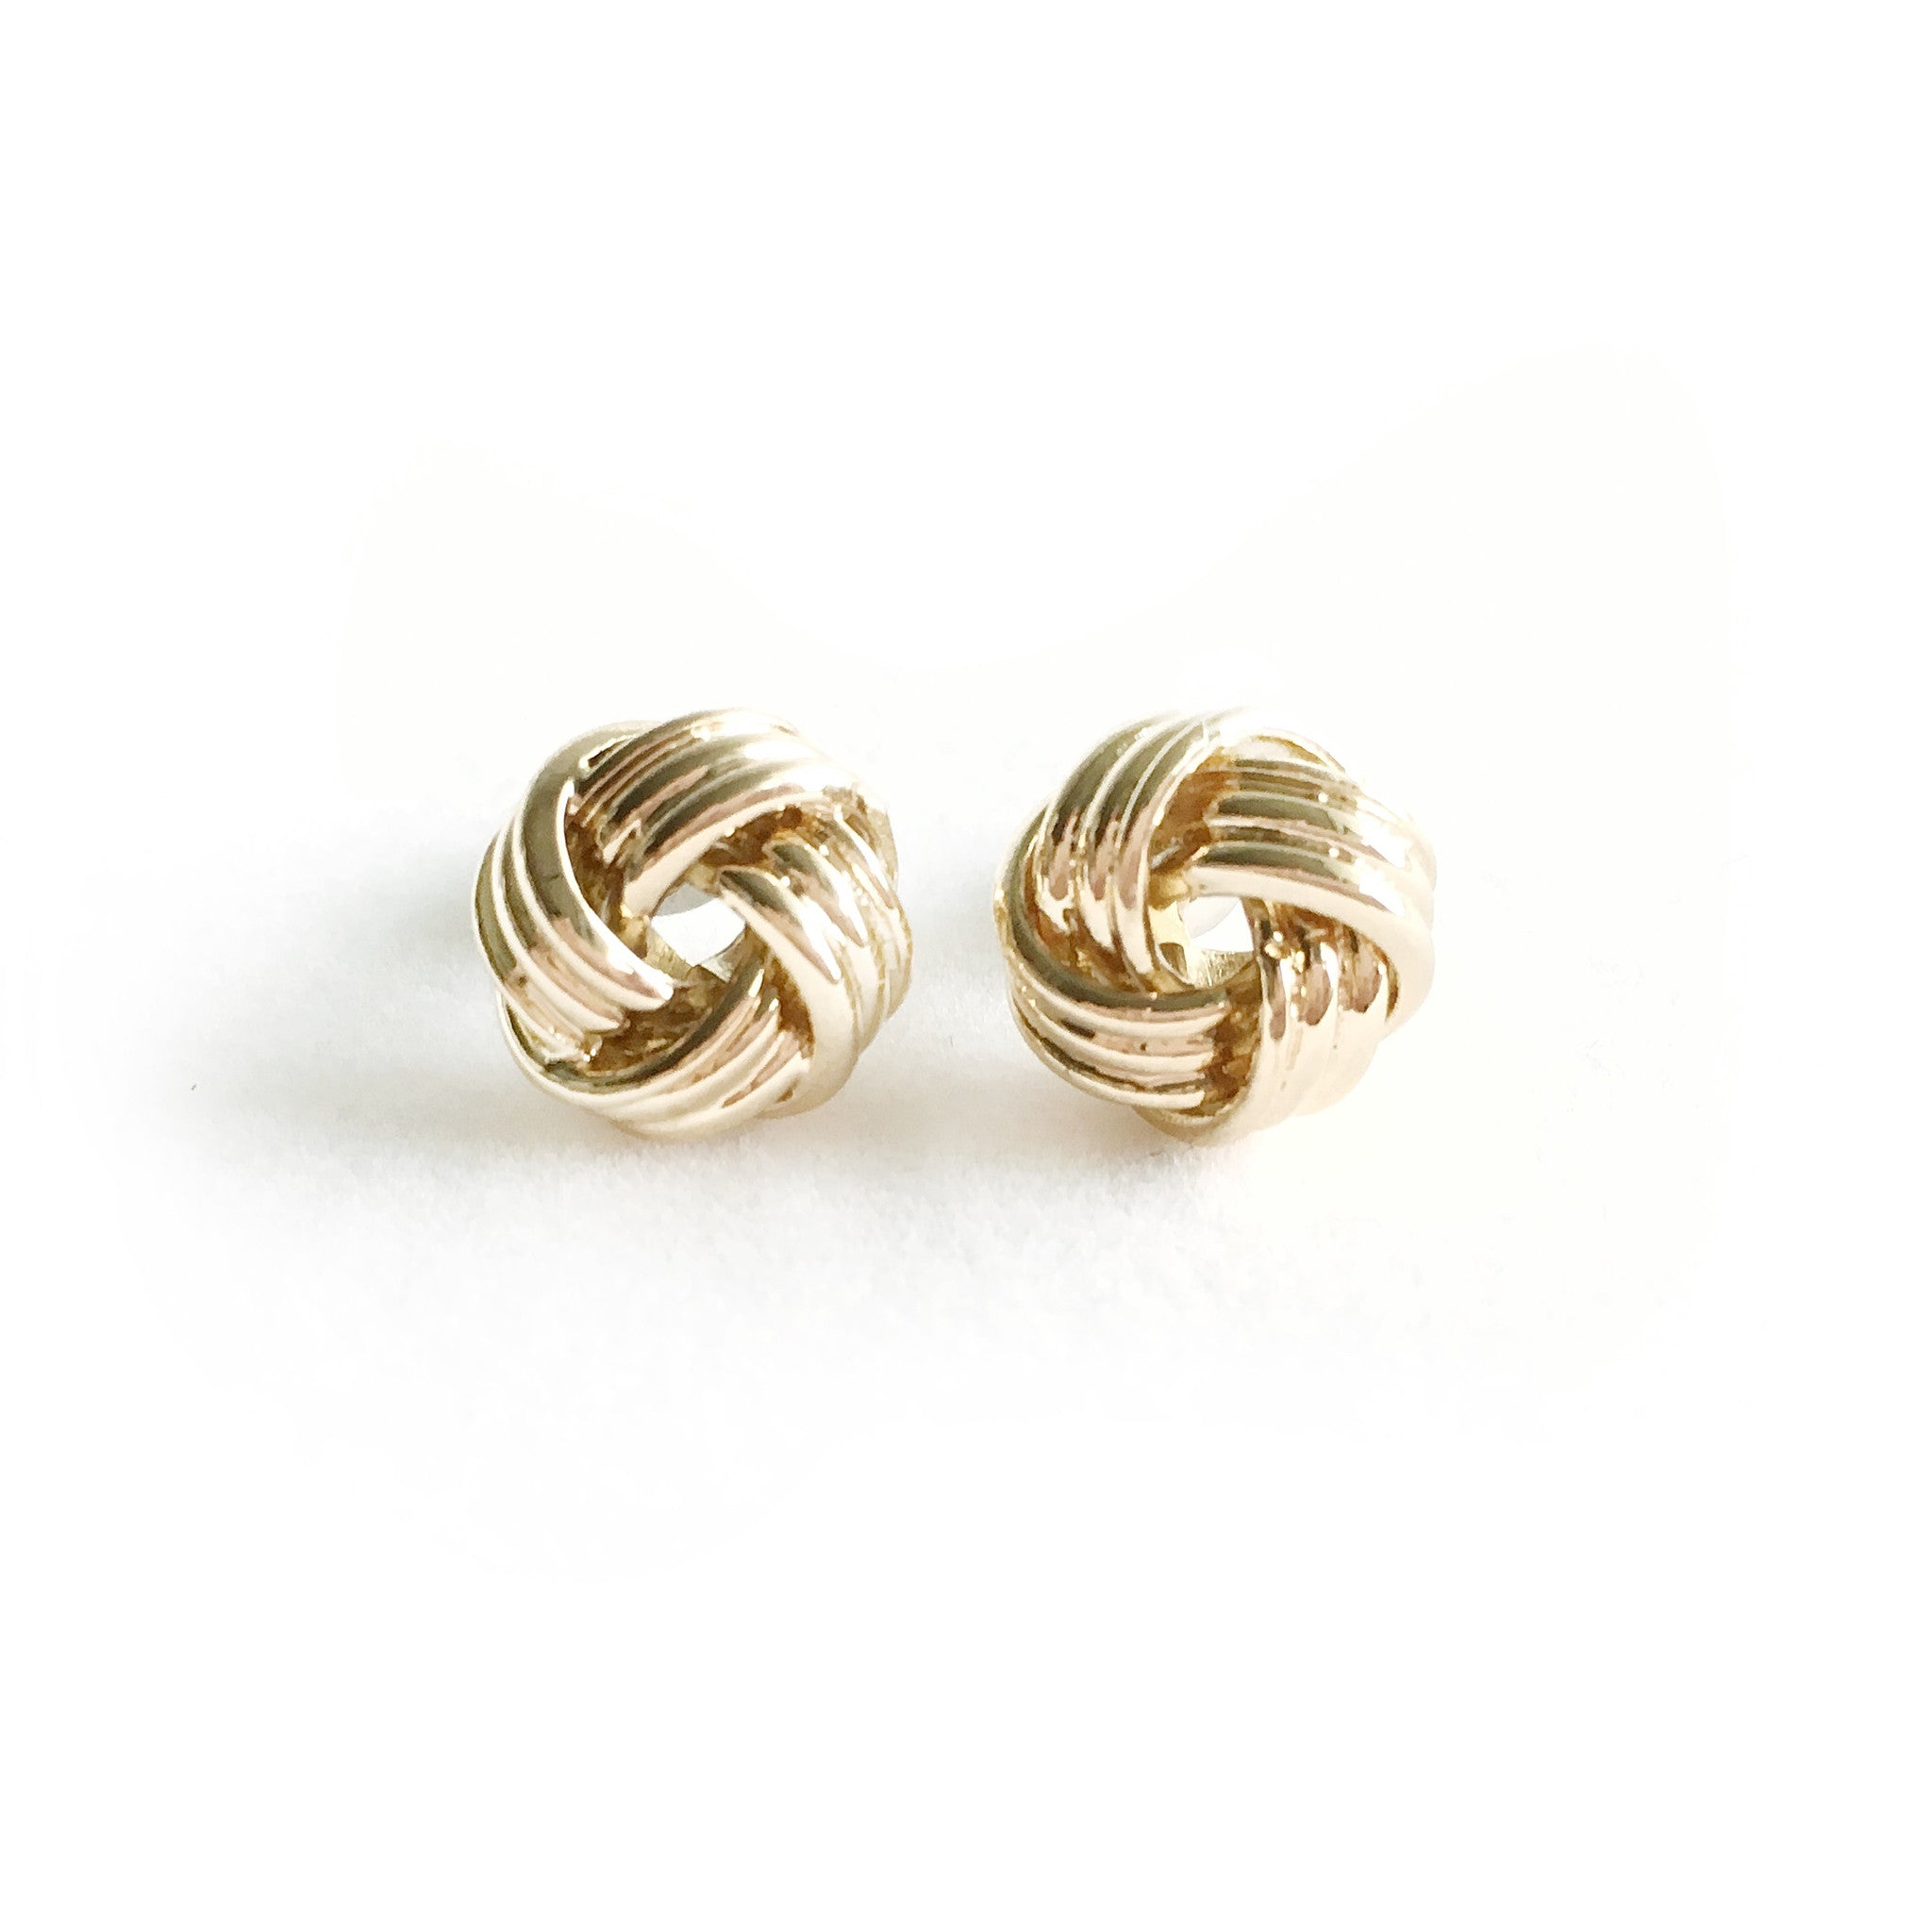 Brooke Gold Earrings - Micha Store